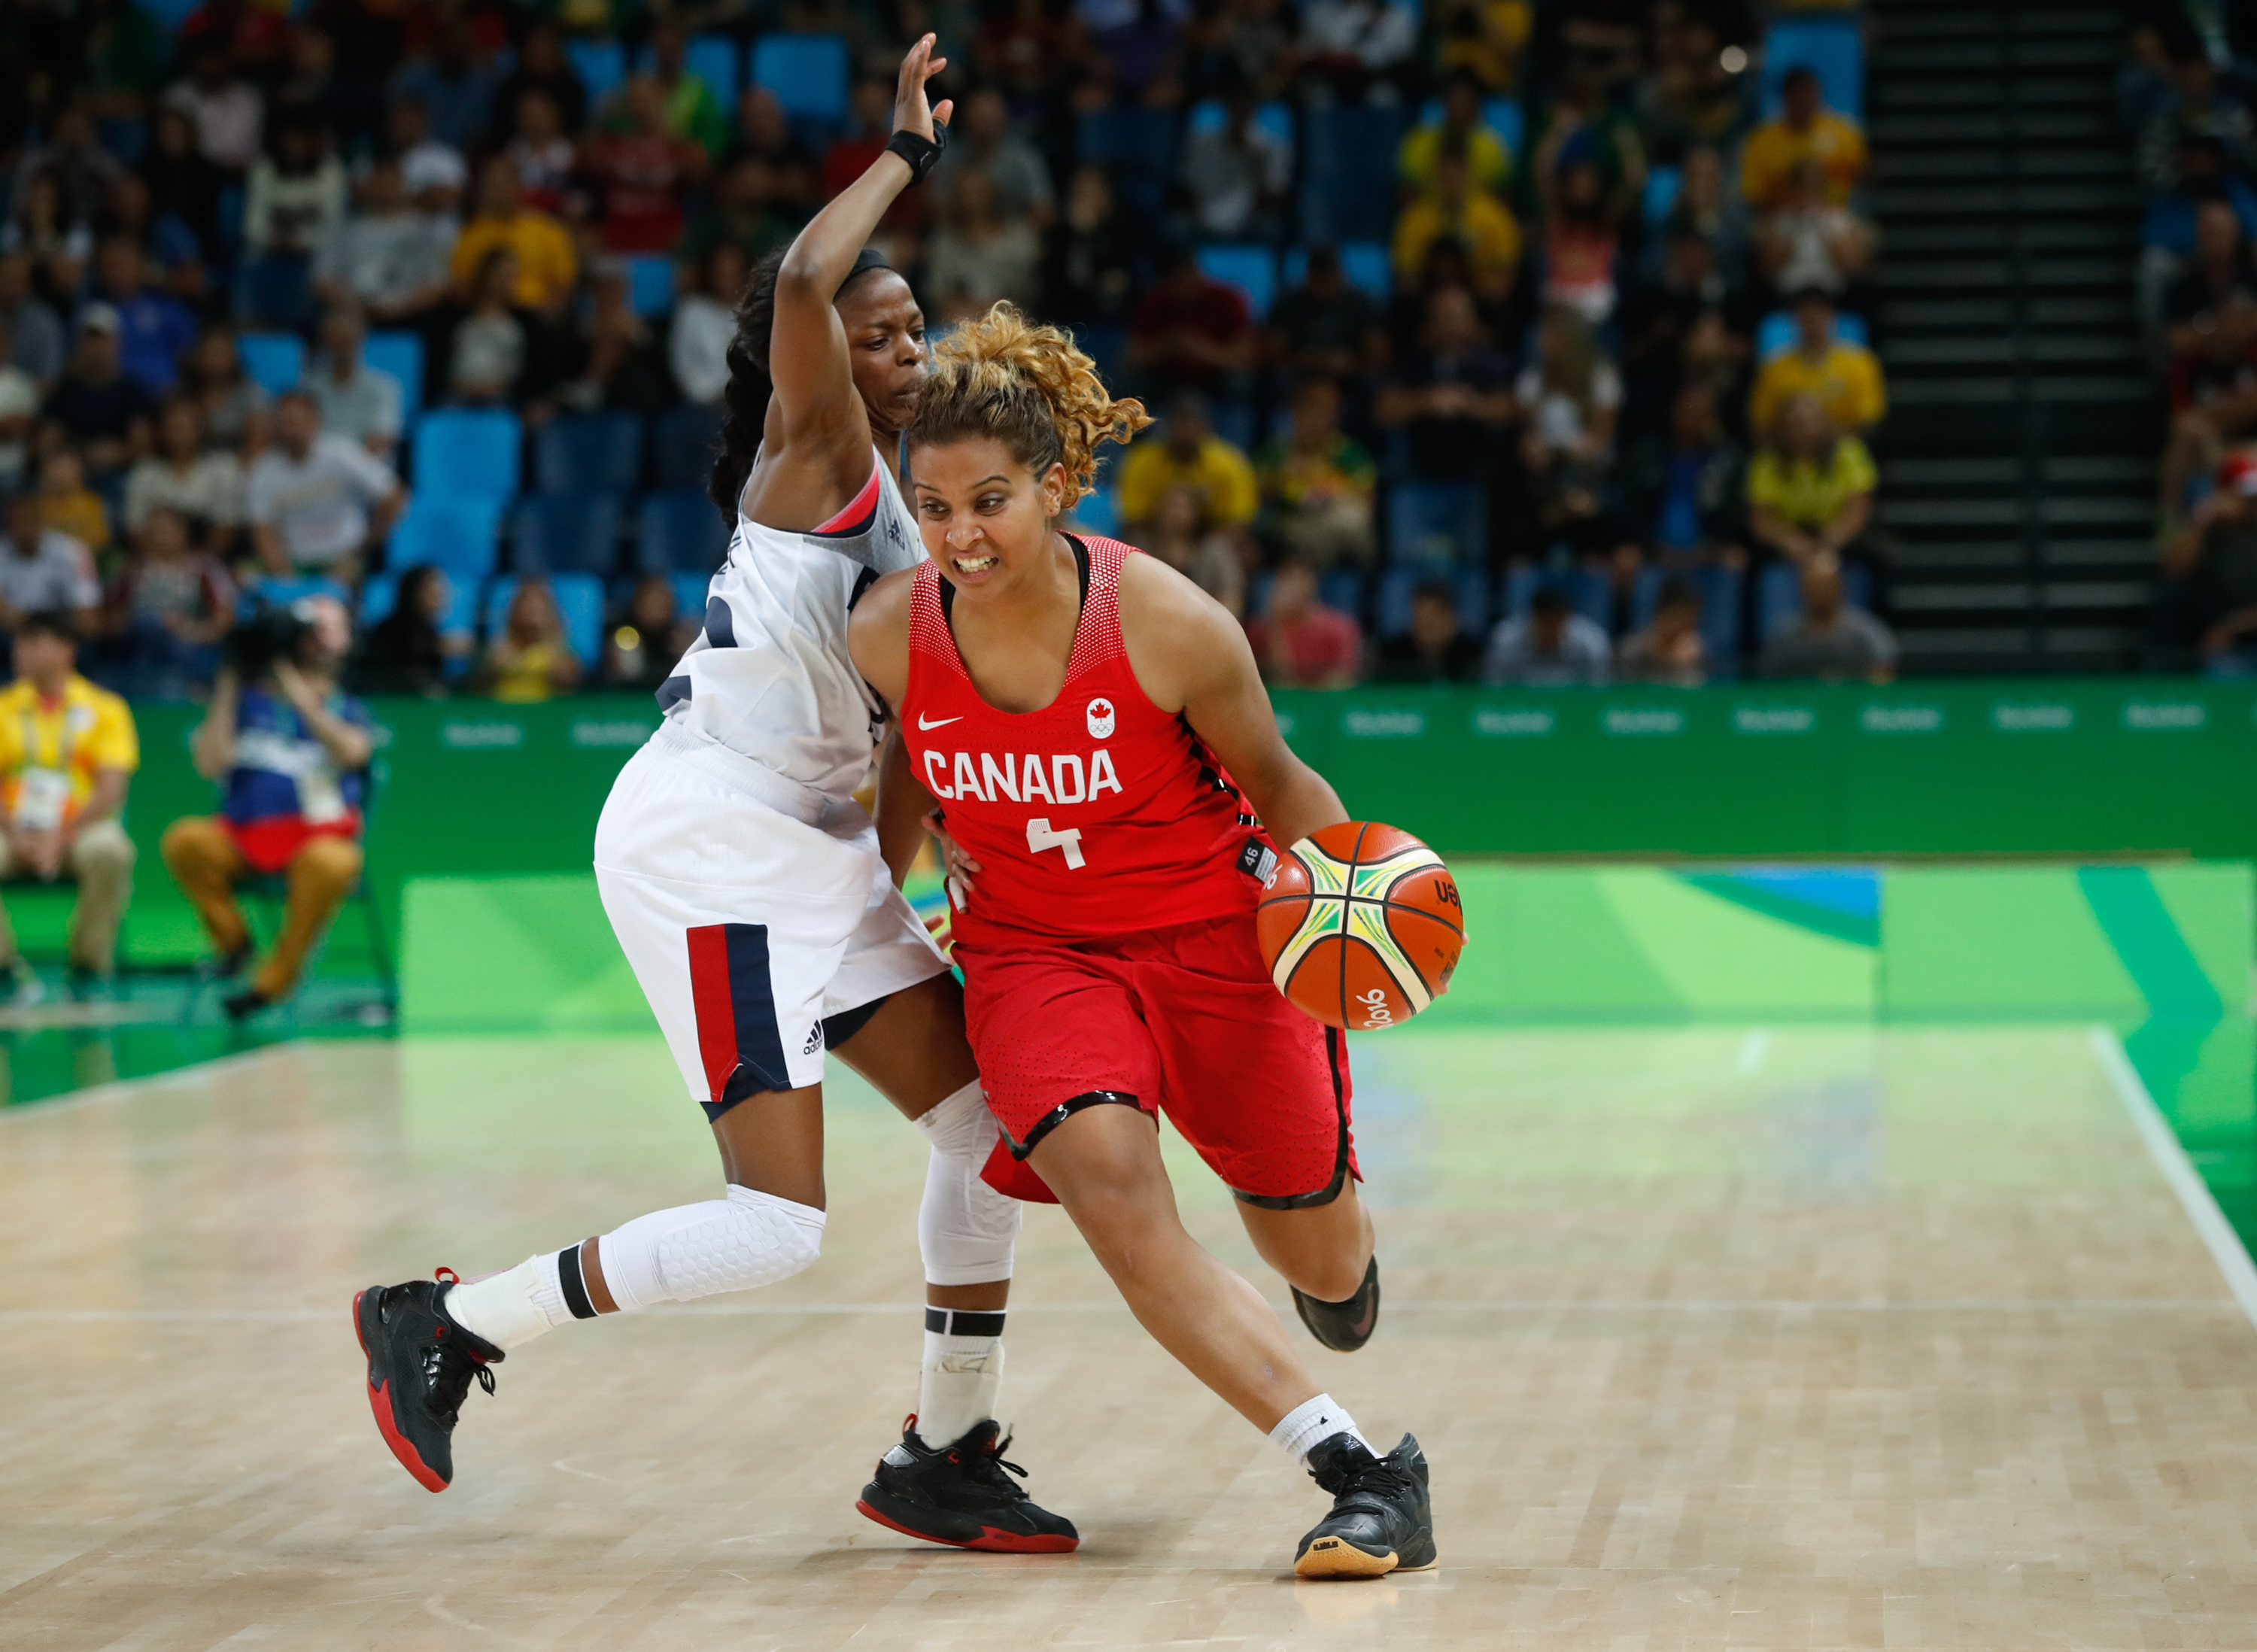 Miah-Marie Langlois competes in the quarterfinals against France during Rio 2016 on August 16, 2016 (COC/Mark Blinch)